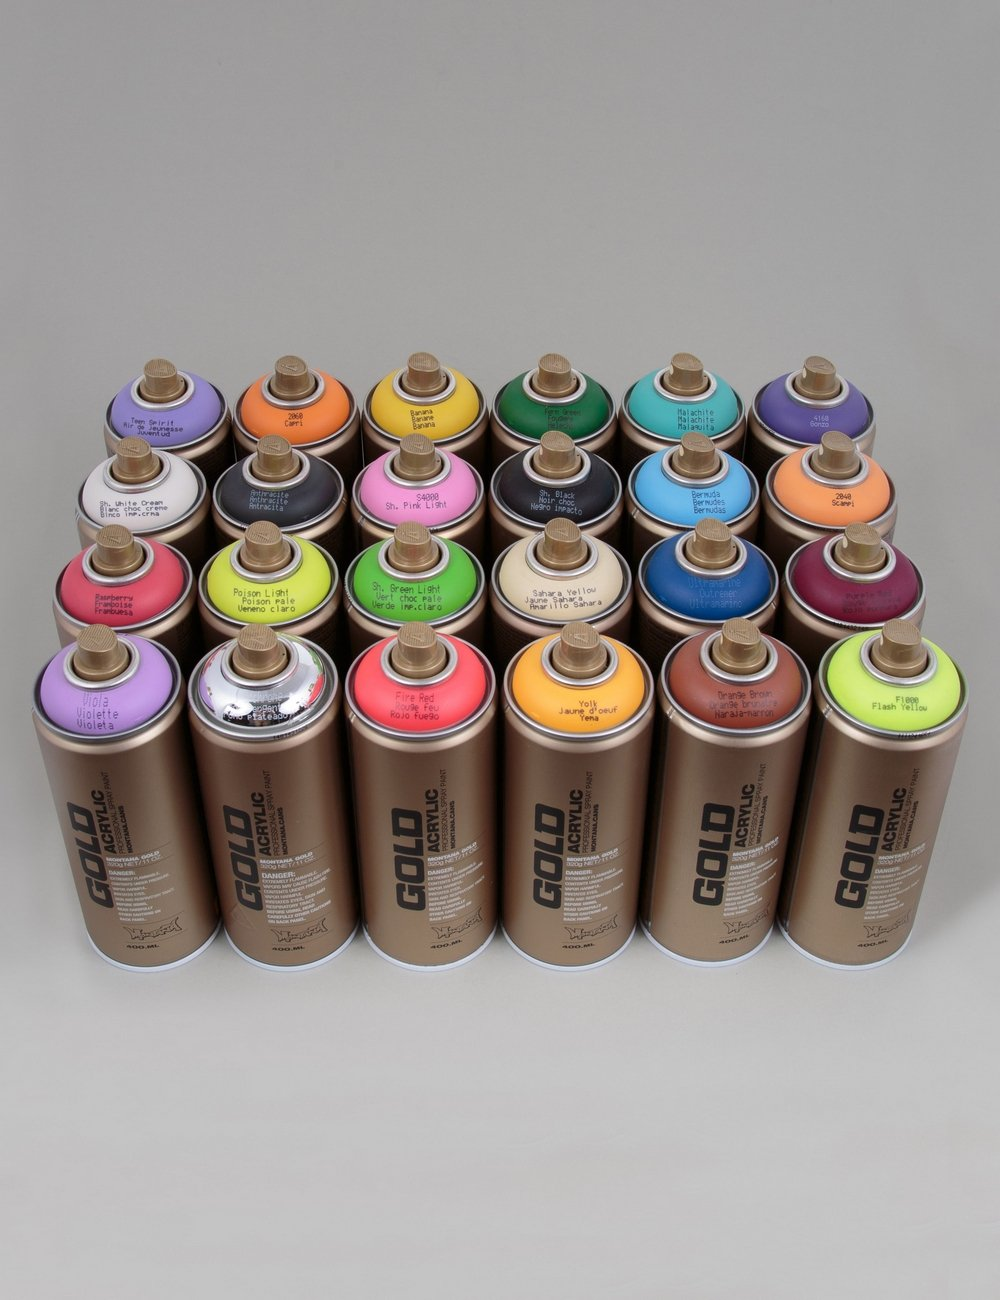 Montana gold spray paint deal 24 cans spray paint supplies from iconsume uk Spray paint supplies